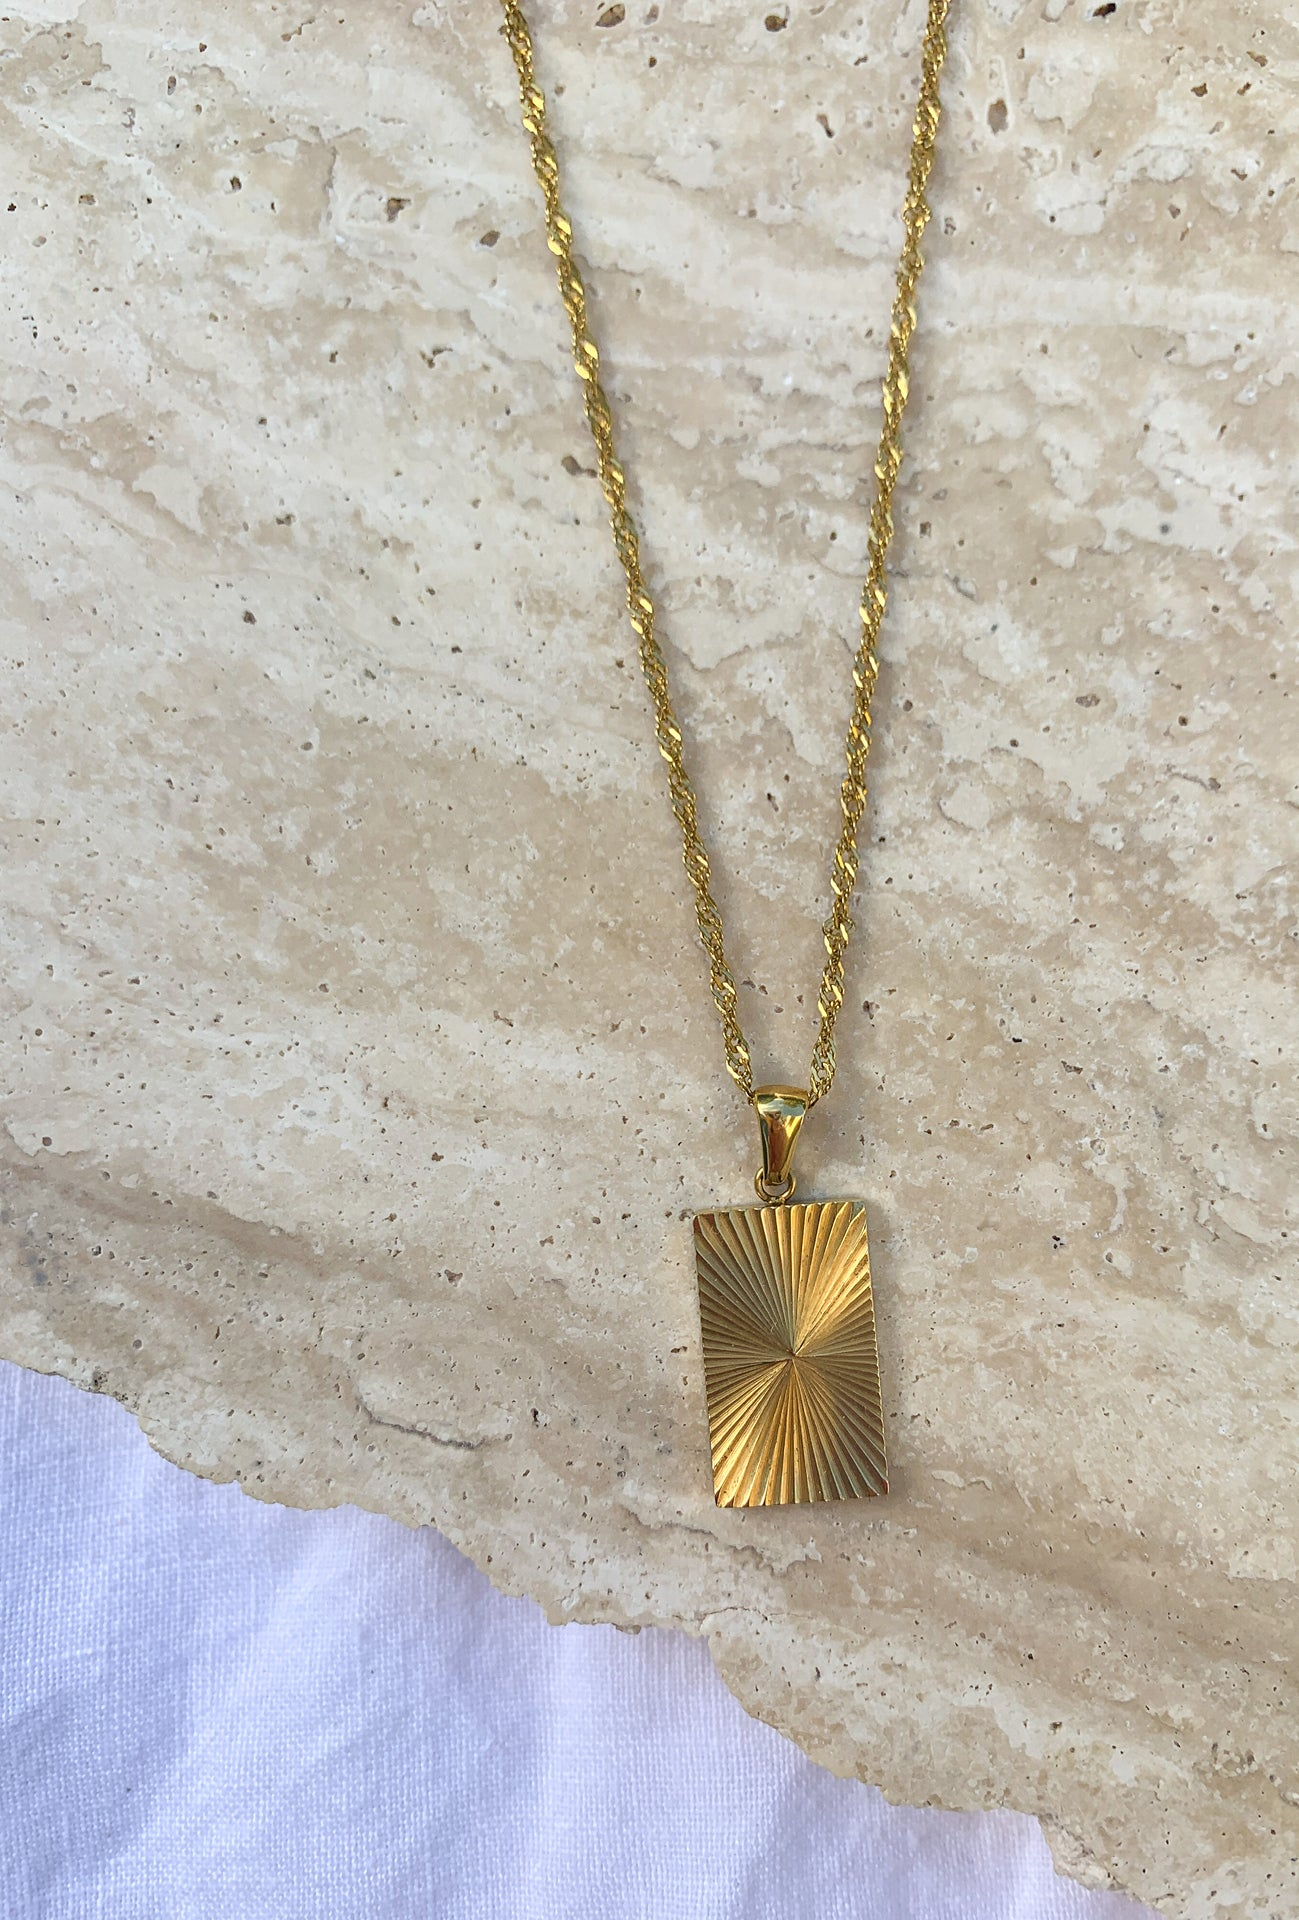 SUNLIGHT PENDANT NECKLACE